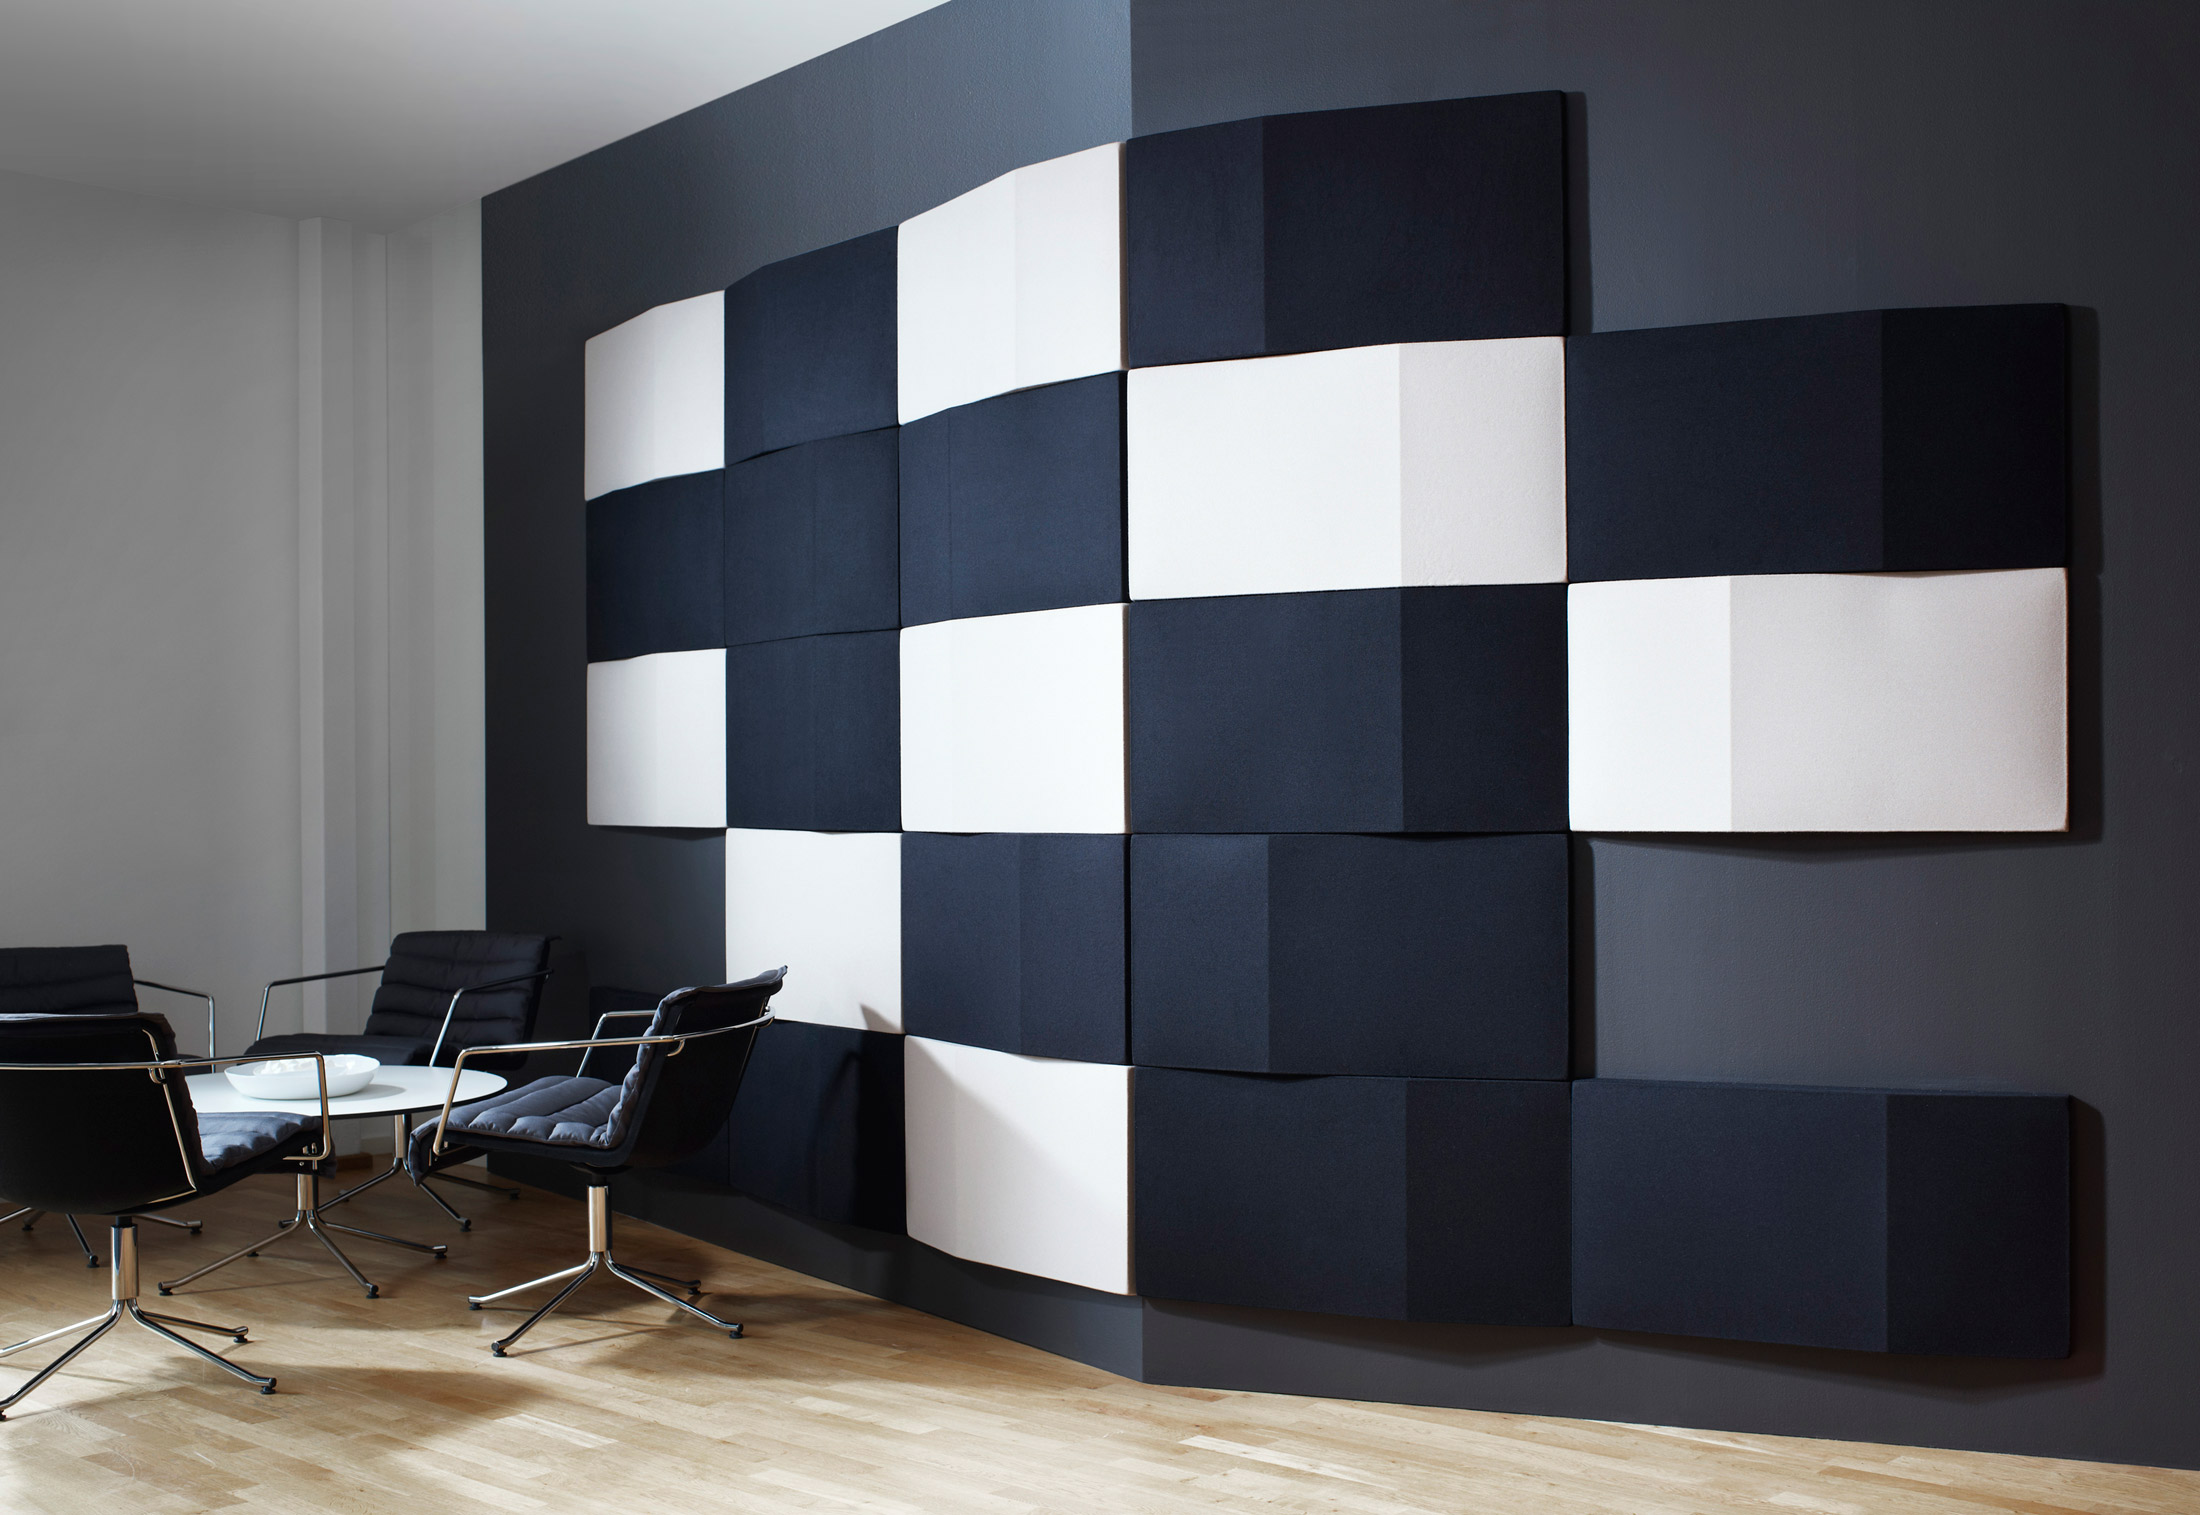 Triline wall panel by Abstracta | STYLEPARK